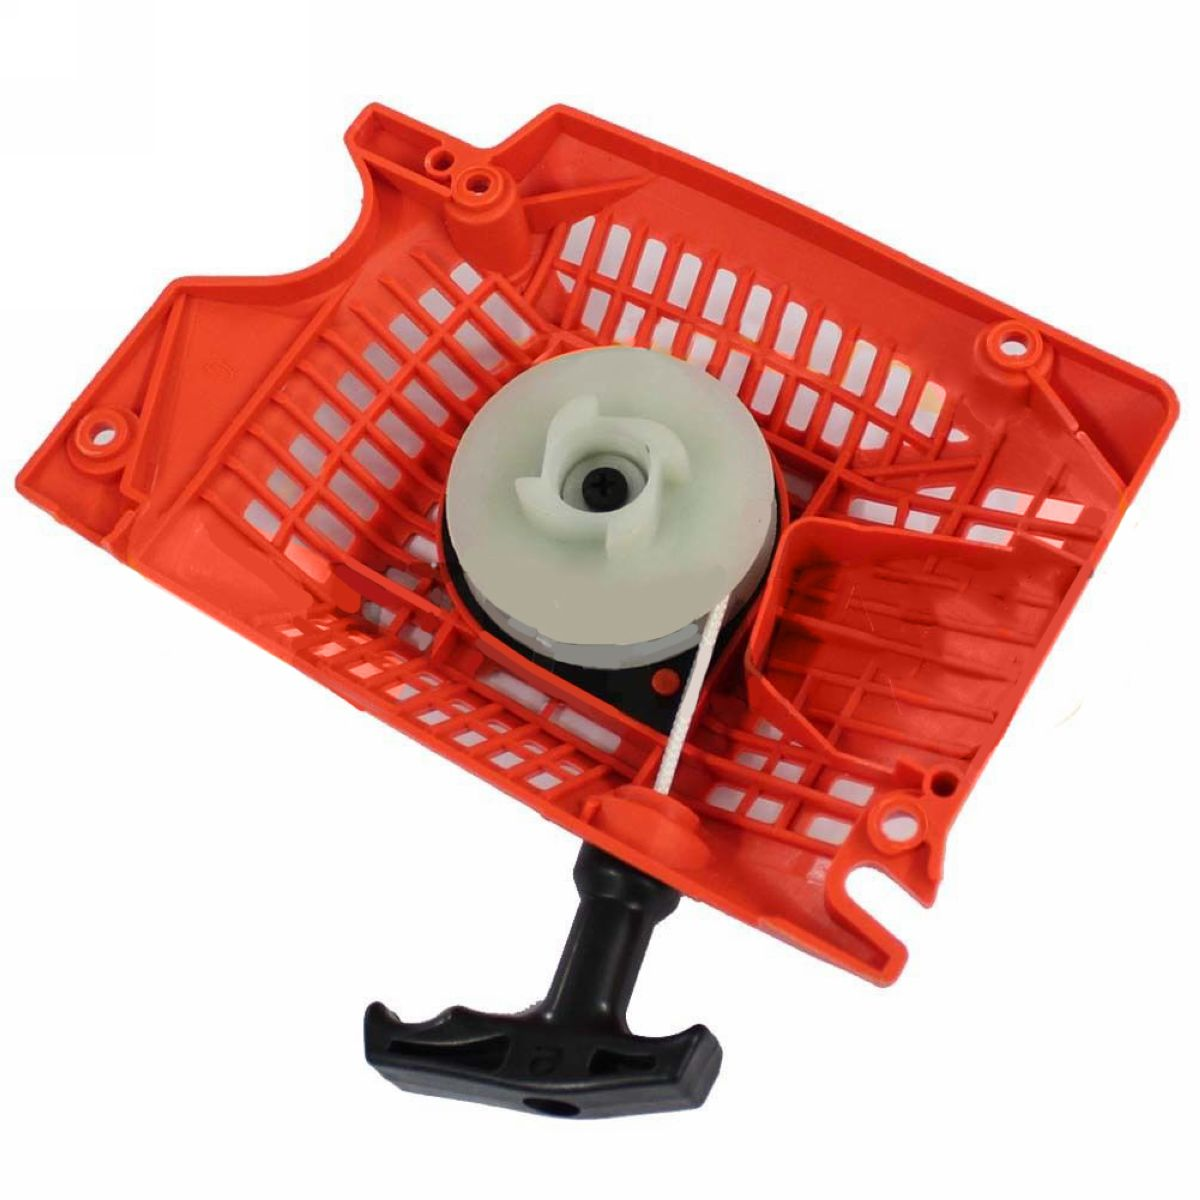 Recoil Pull Start Starter For Chainsaw 4500 5200 5800 Replacement For Chinese Chainsaw 45cc 52cc 58cc Orange Mayitr 4500 5200 5800 45cc 52cc 58cc chinese chainsaw damper spring shock buffer set